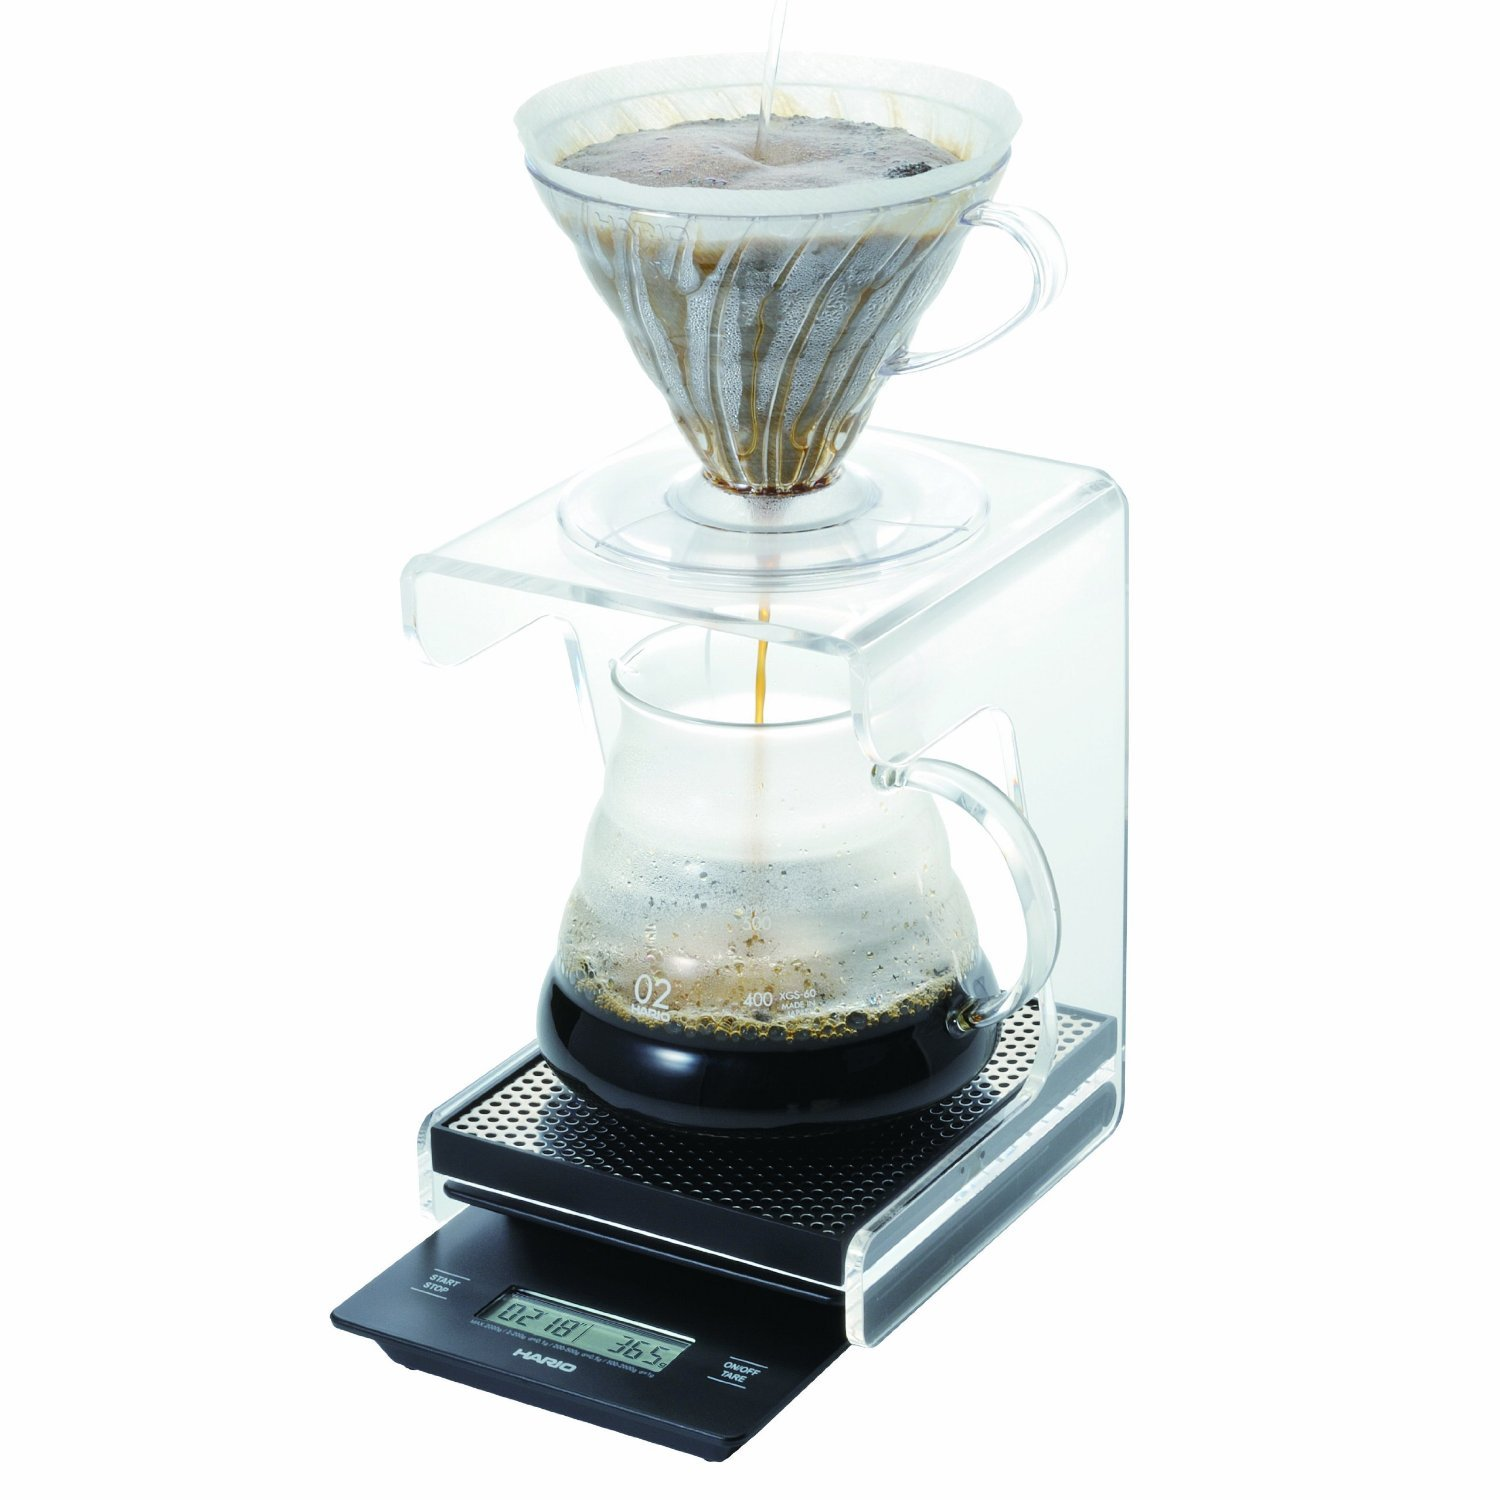 Hario V60 Complete Coffee Brewing Set - Scale, Brewer Set & Stand by Hario (Image #4)